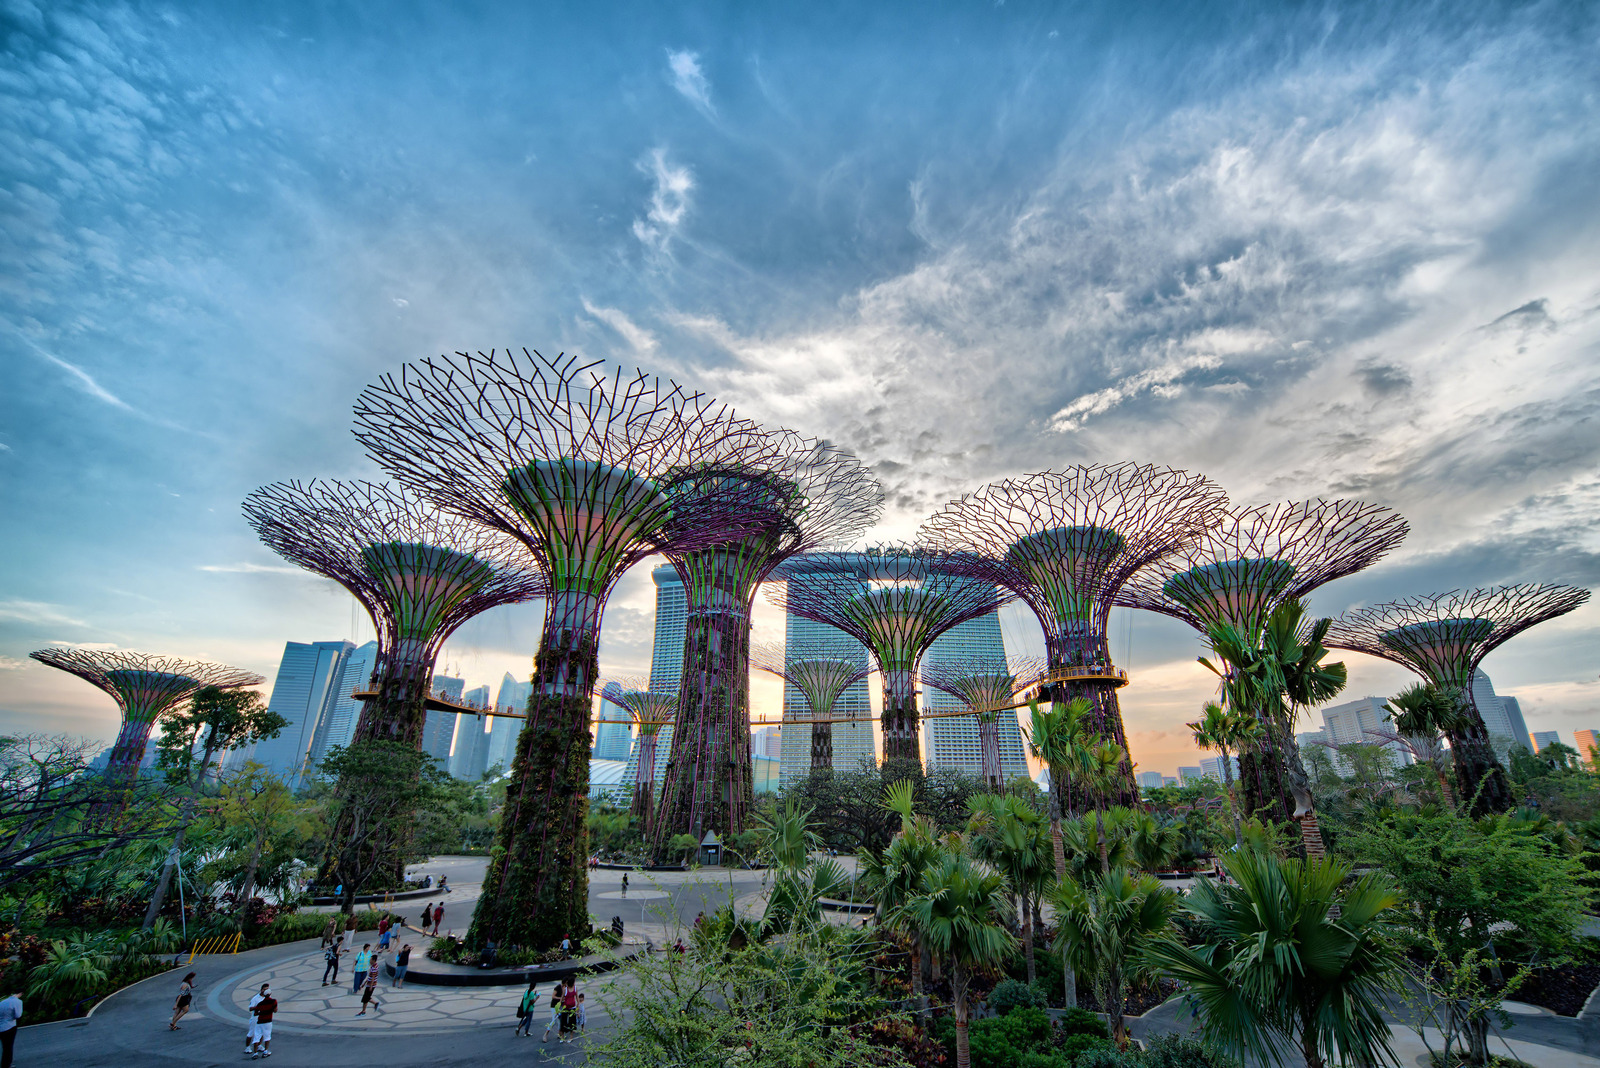 Gardens By The Bay Urban Park In Singapore Thousand